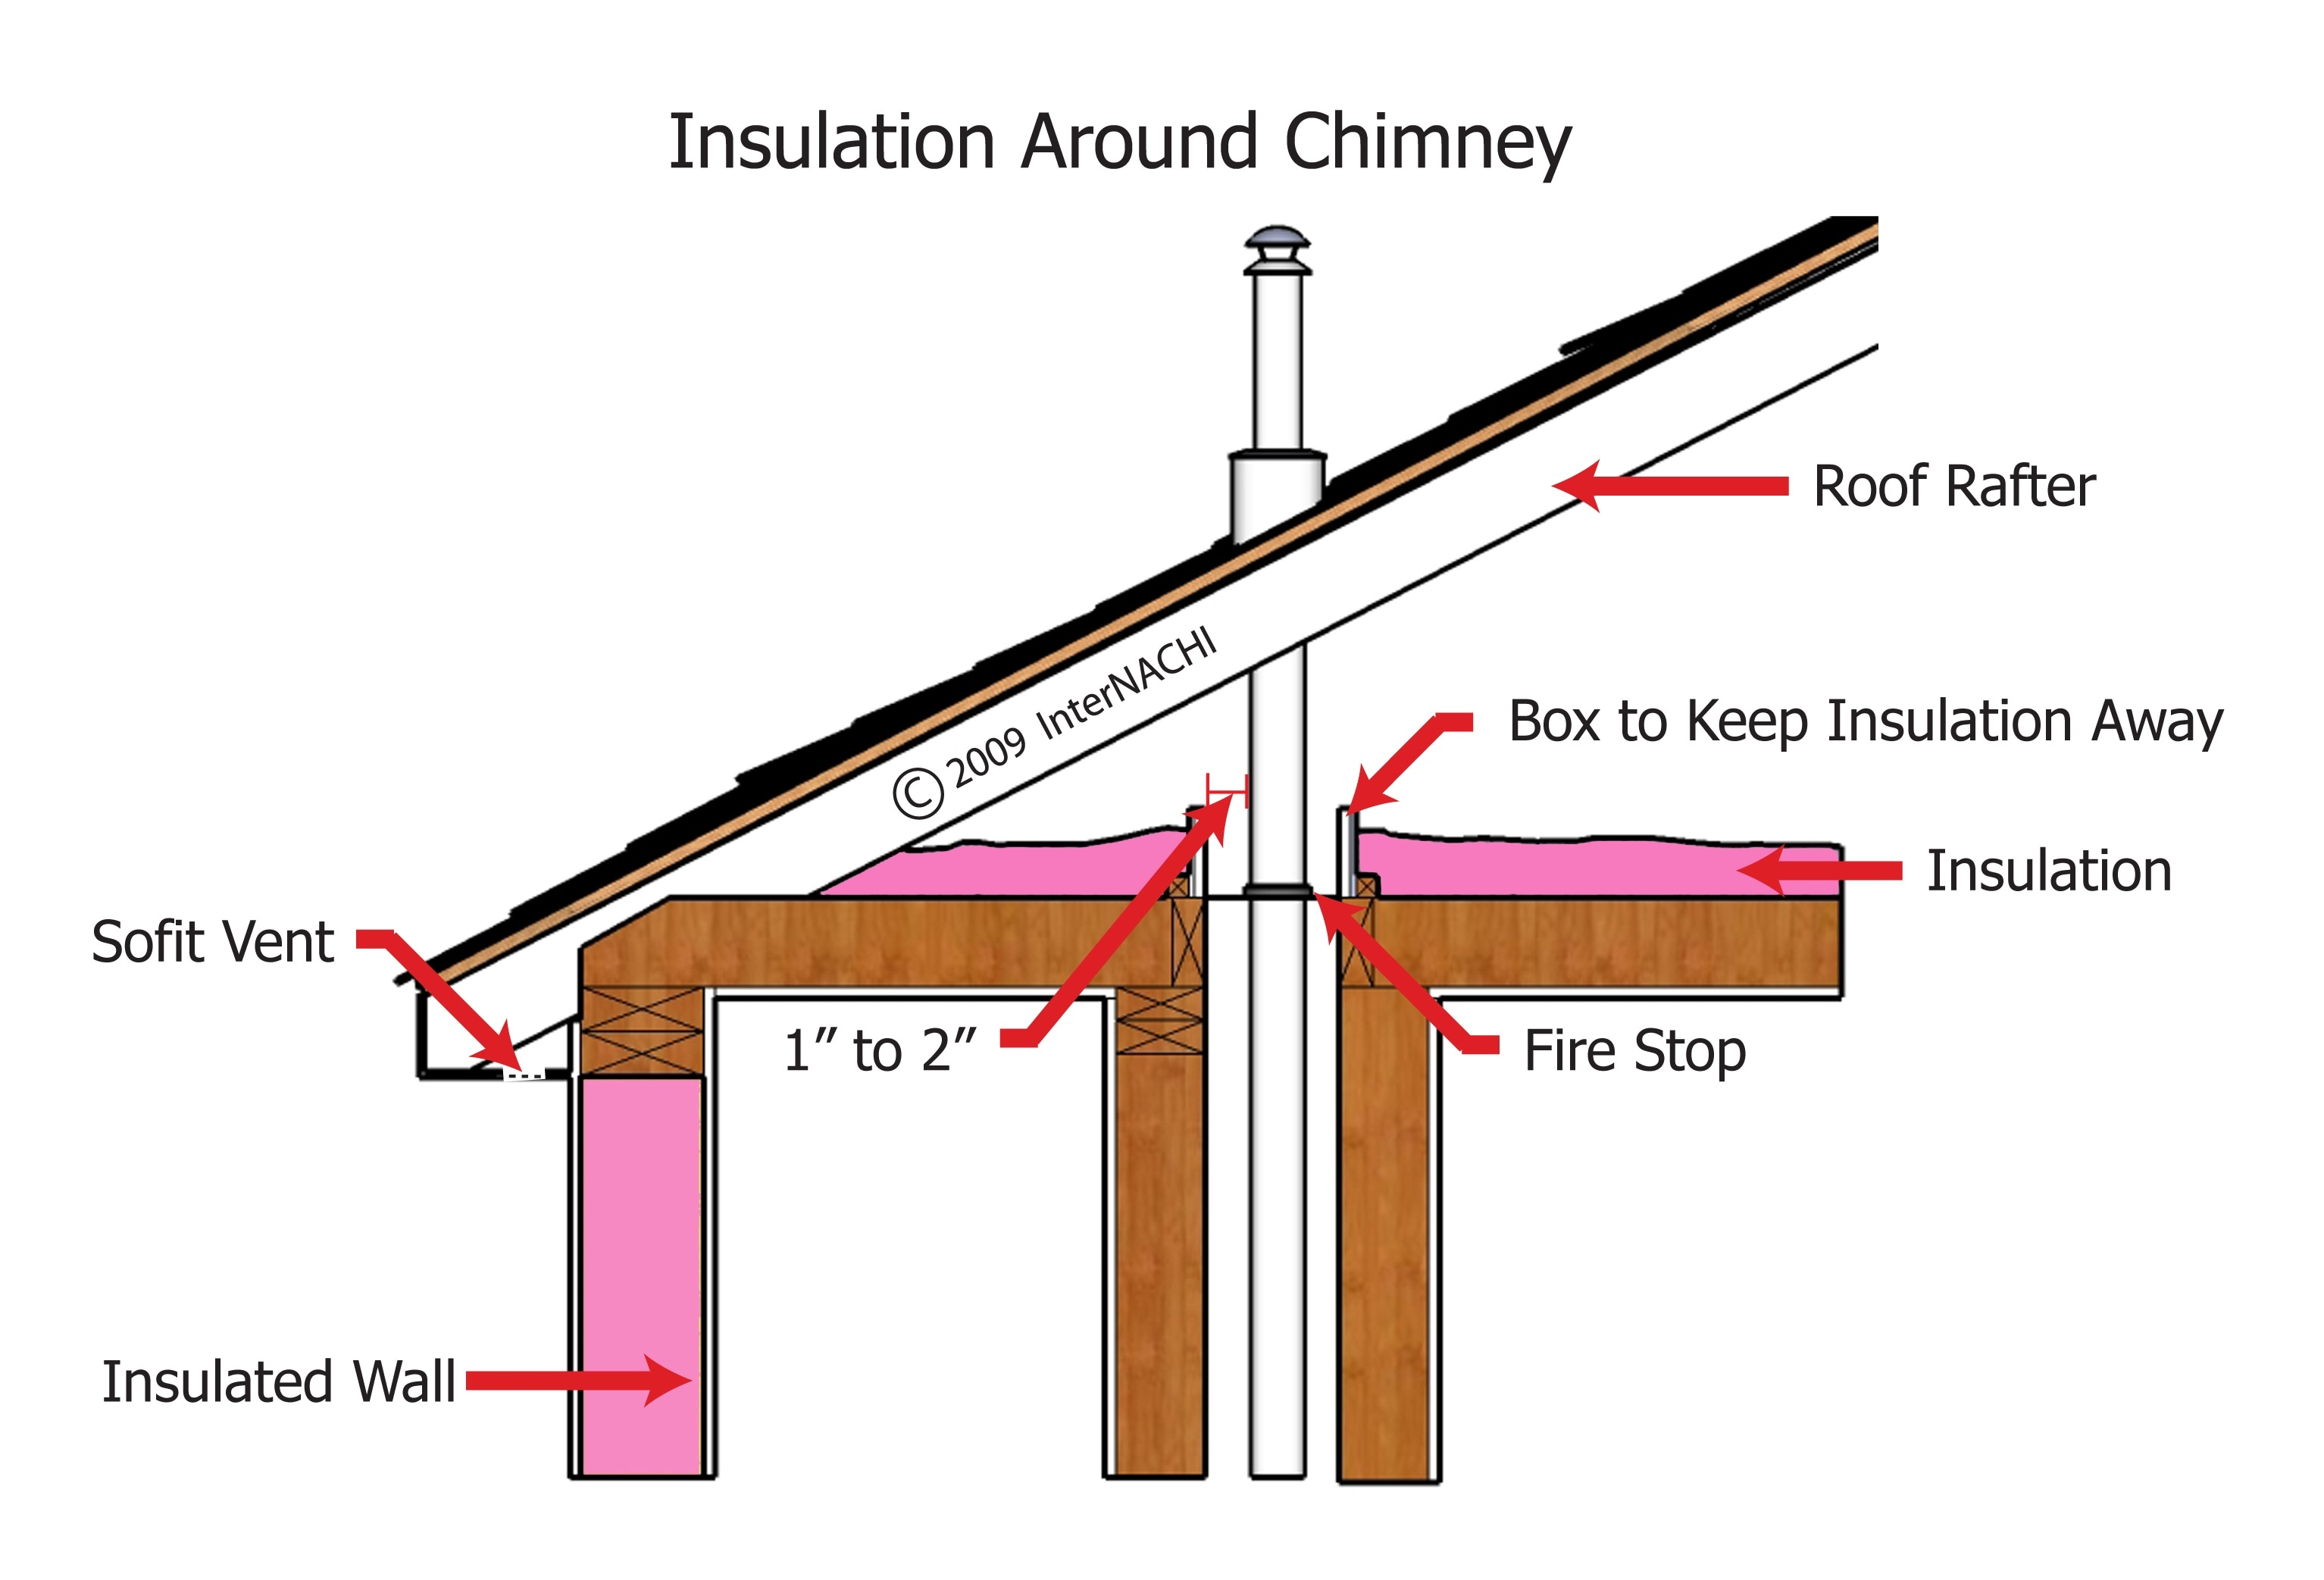 Insulation around chimney.